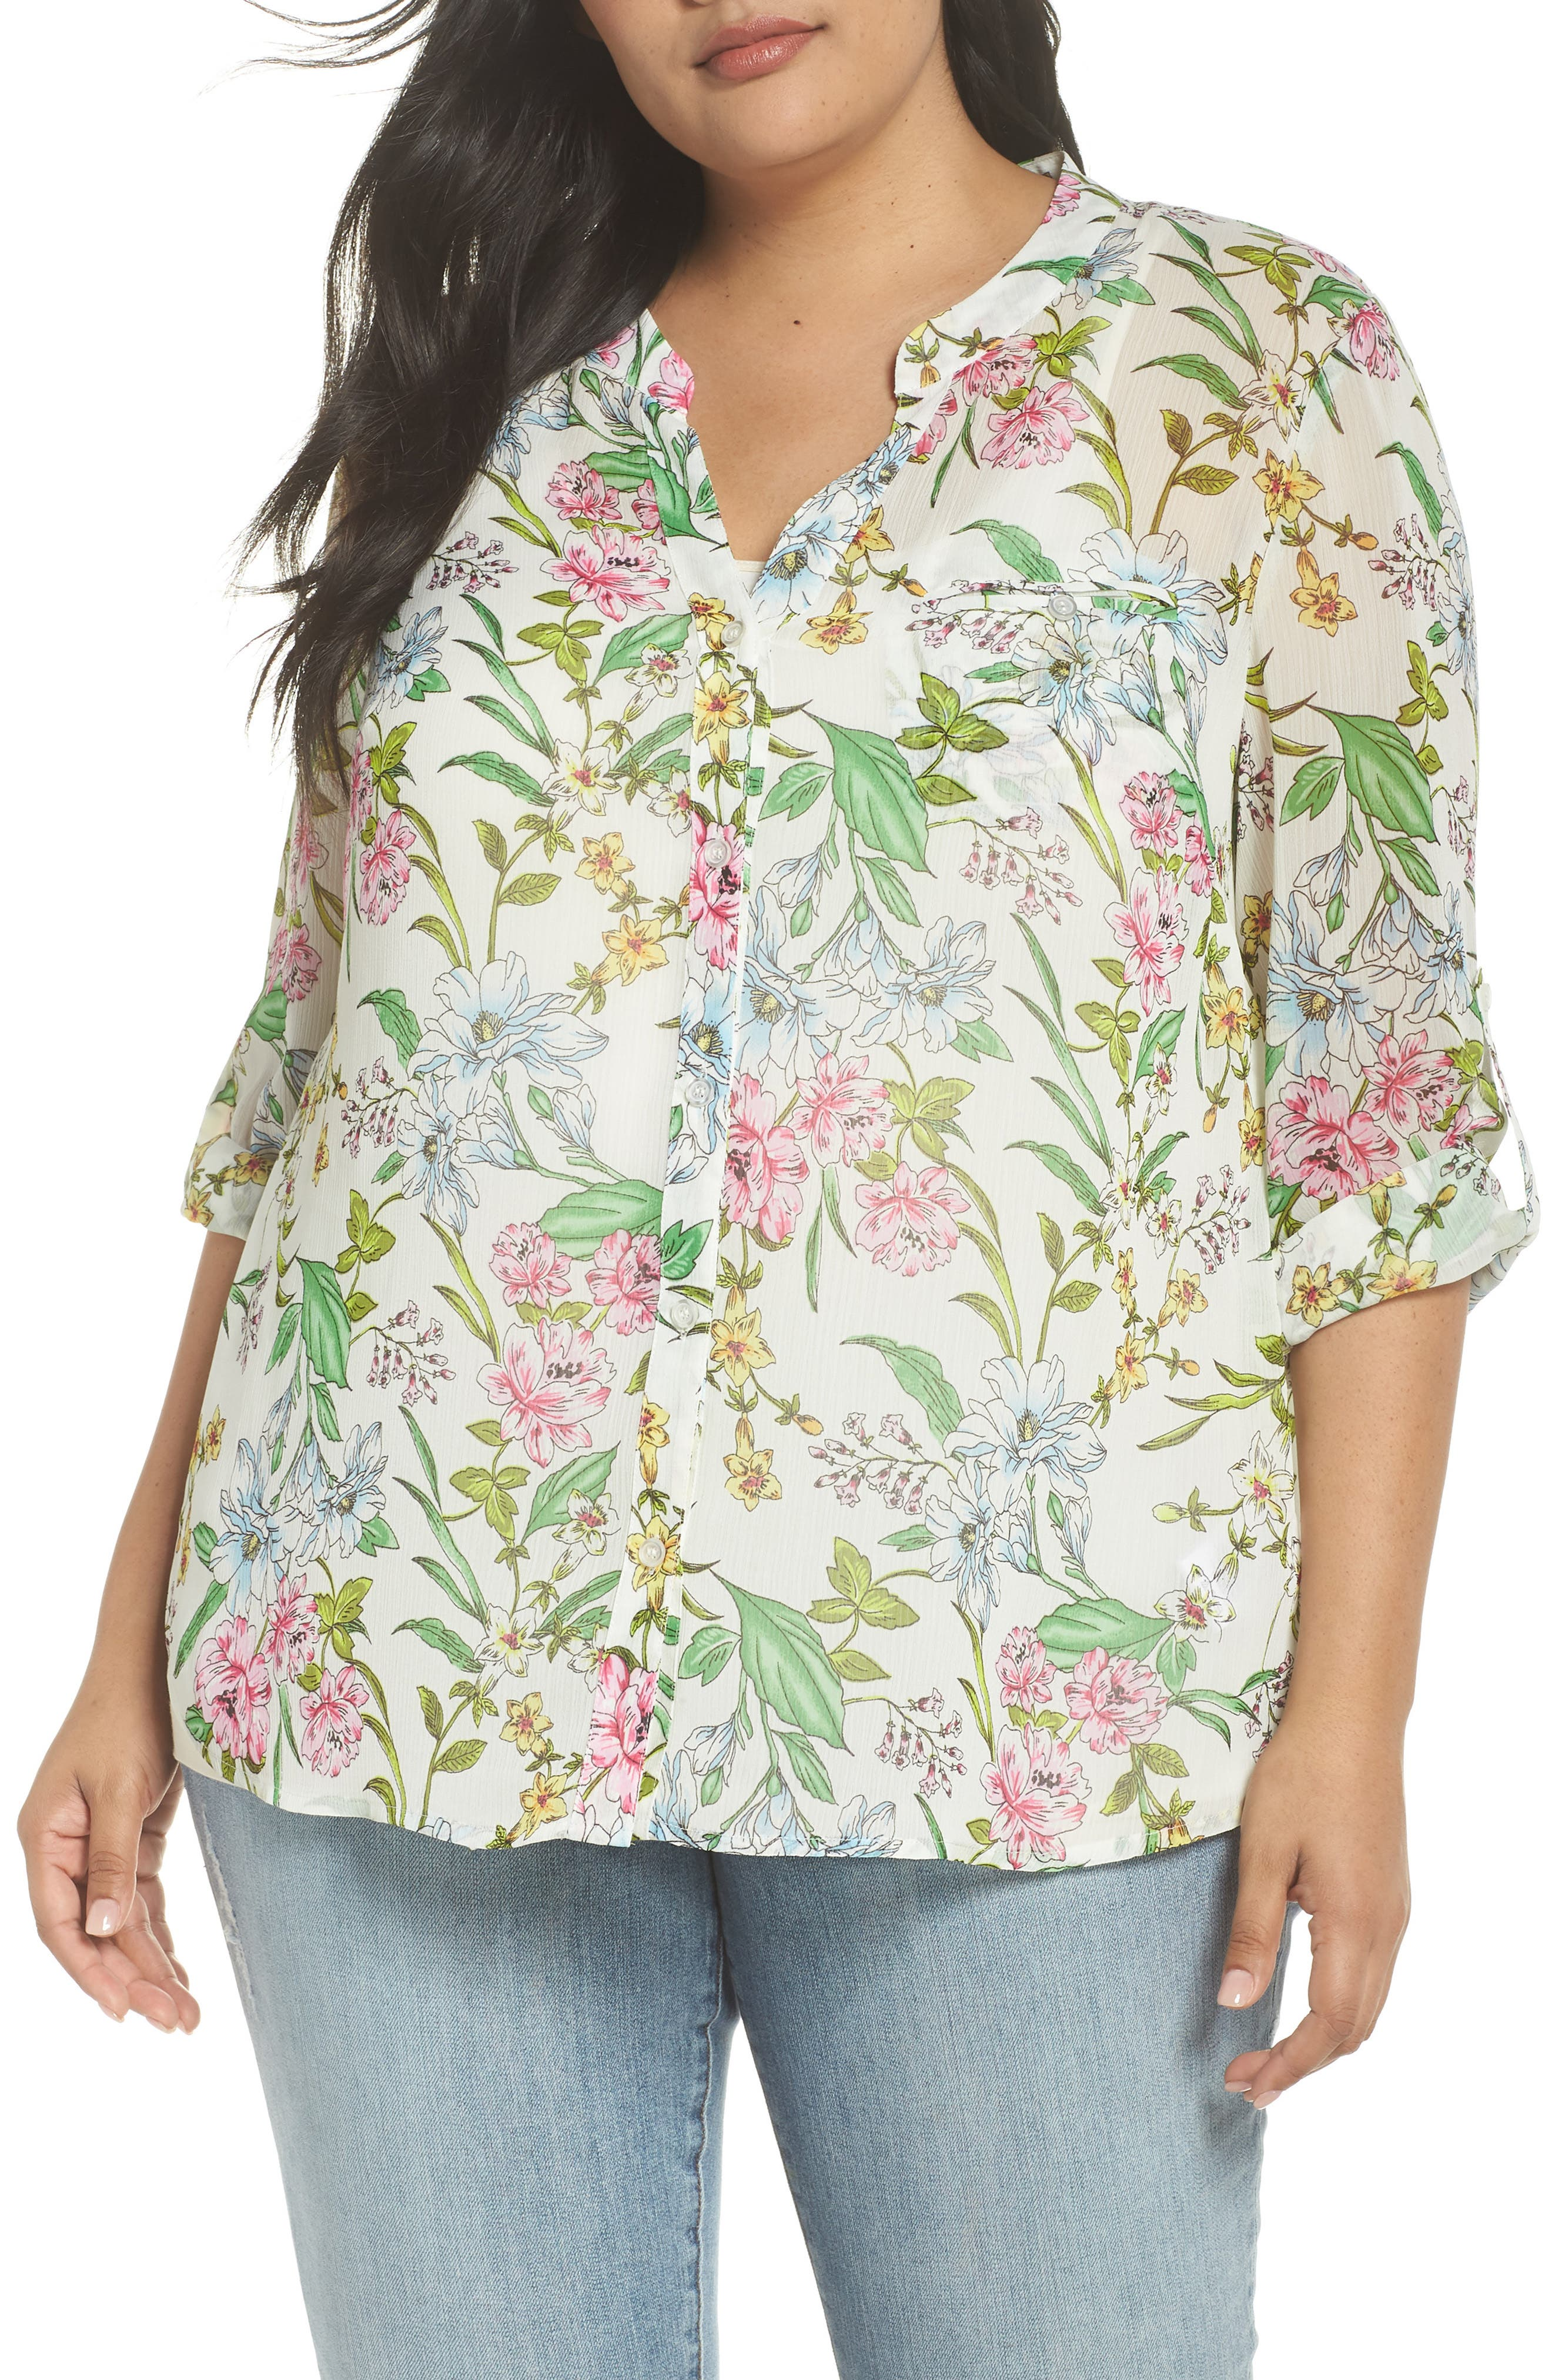 Jasmine Floral Roll Sleeve Top,                             Main thumbnail 1, color,                             White/ Green